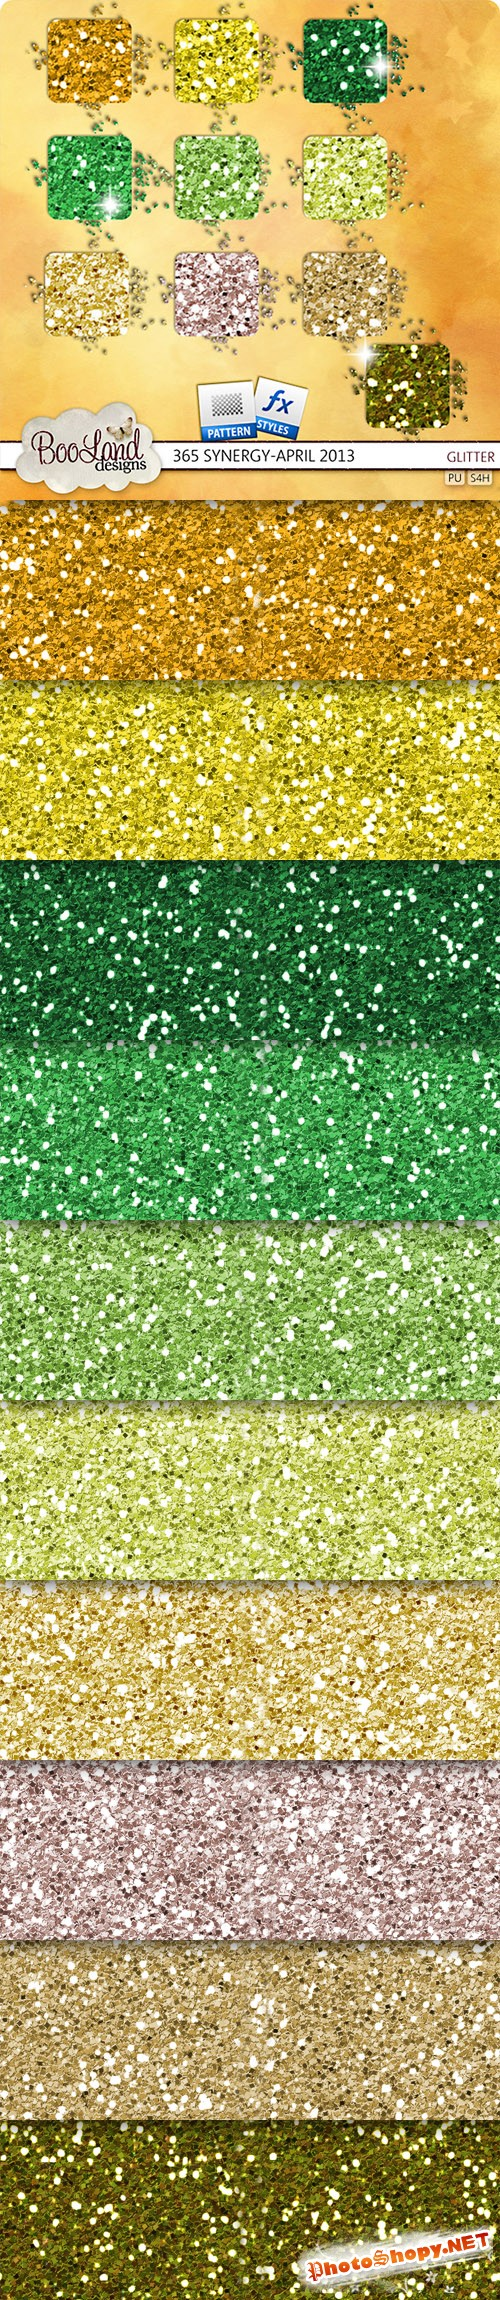 Glitter Texture and Background Photoshop Patterns